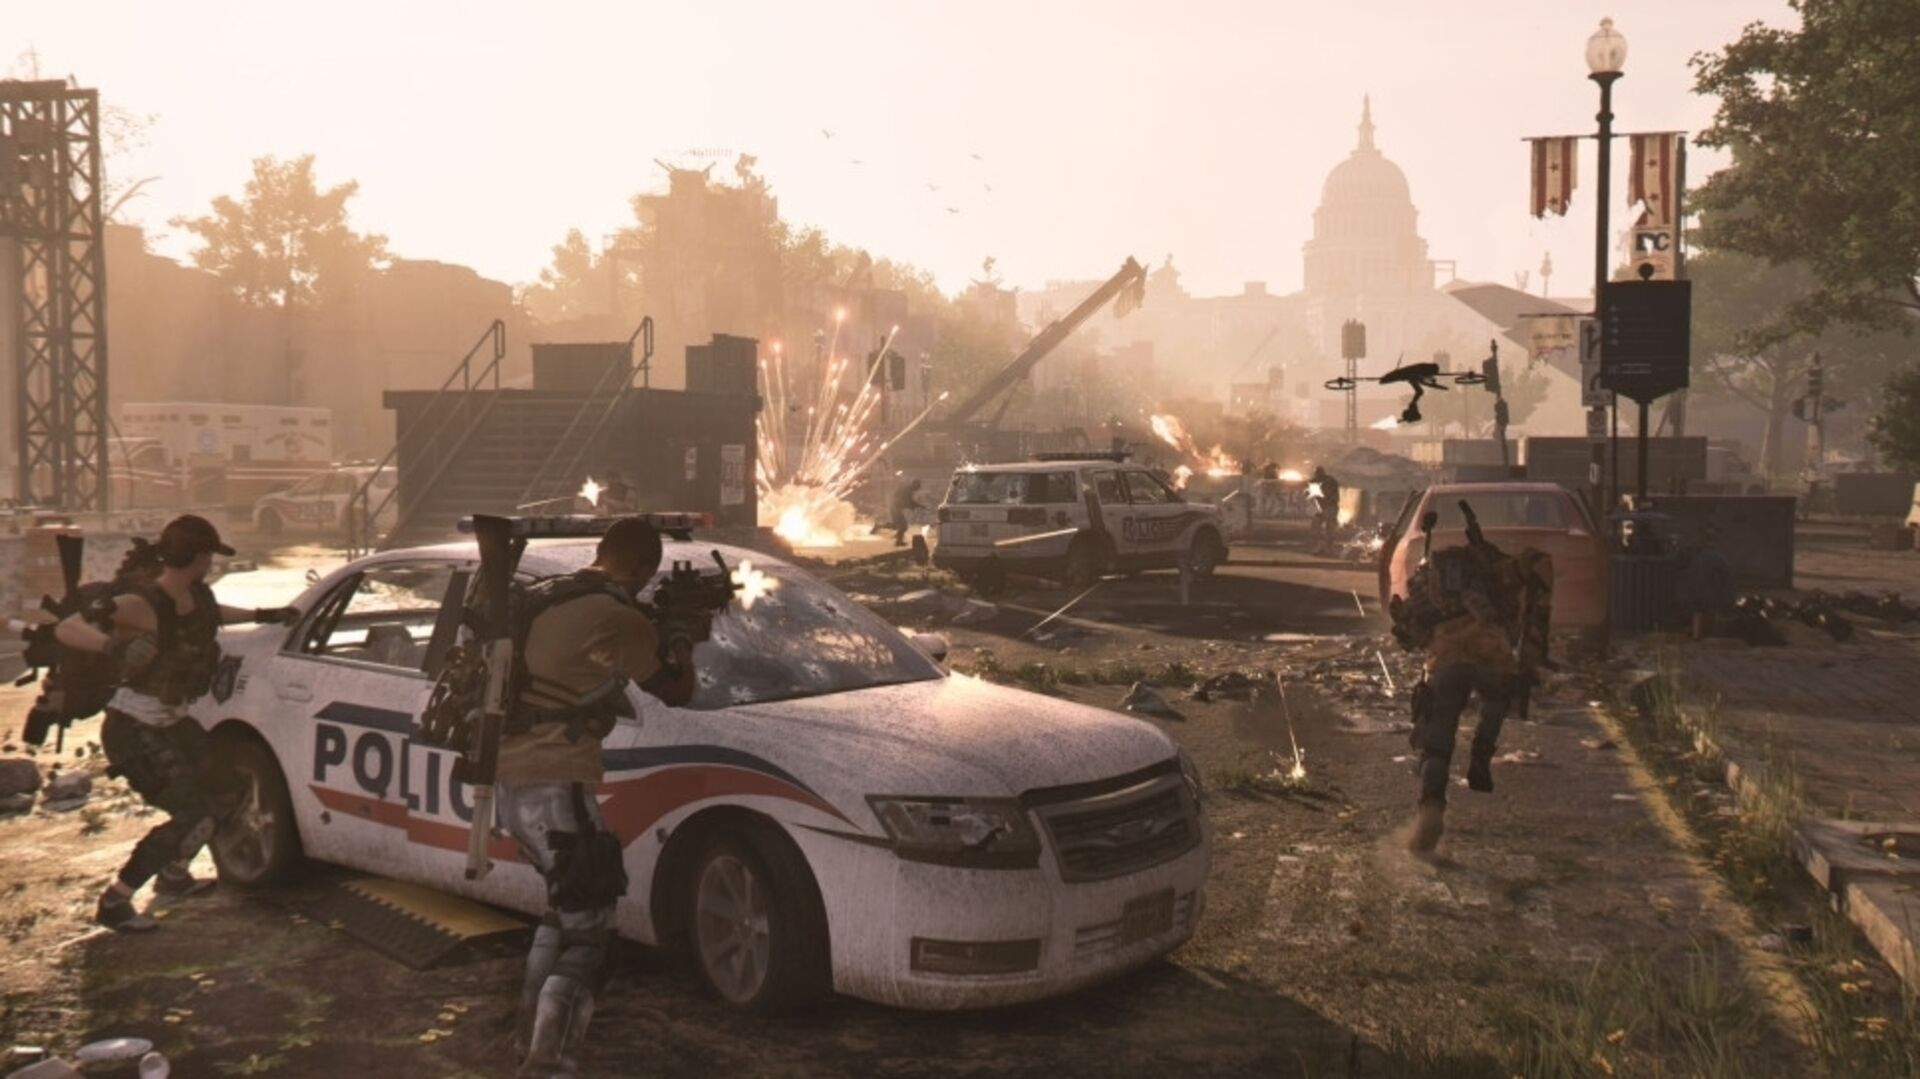 The Division 2's day one patch is 90GB for physical edition